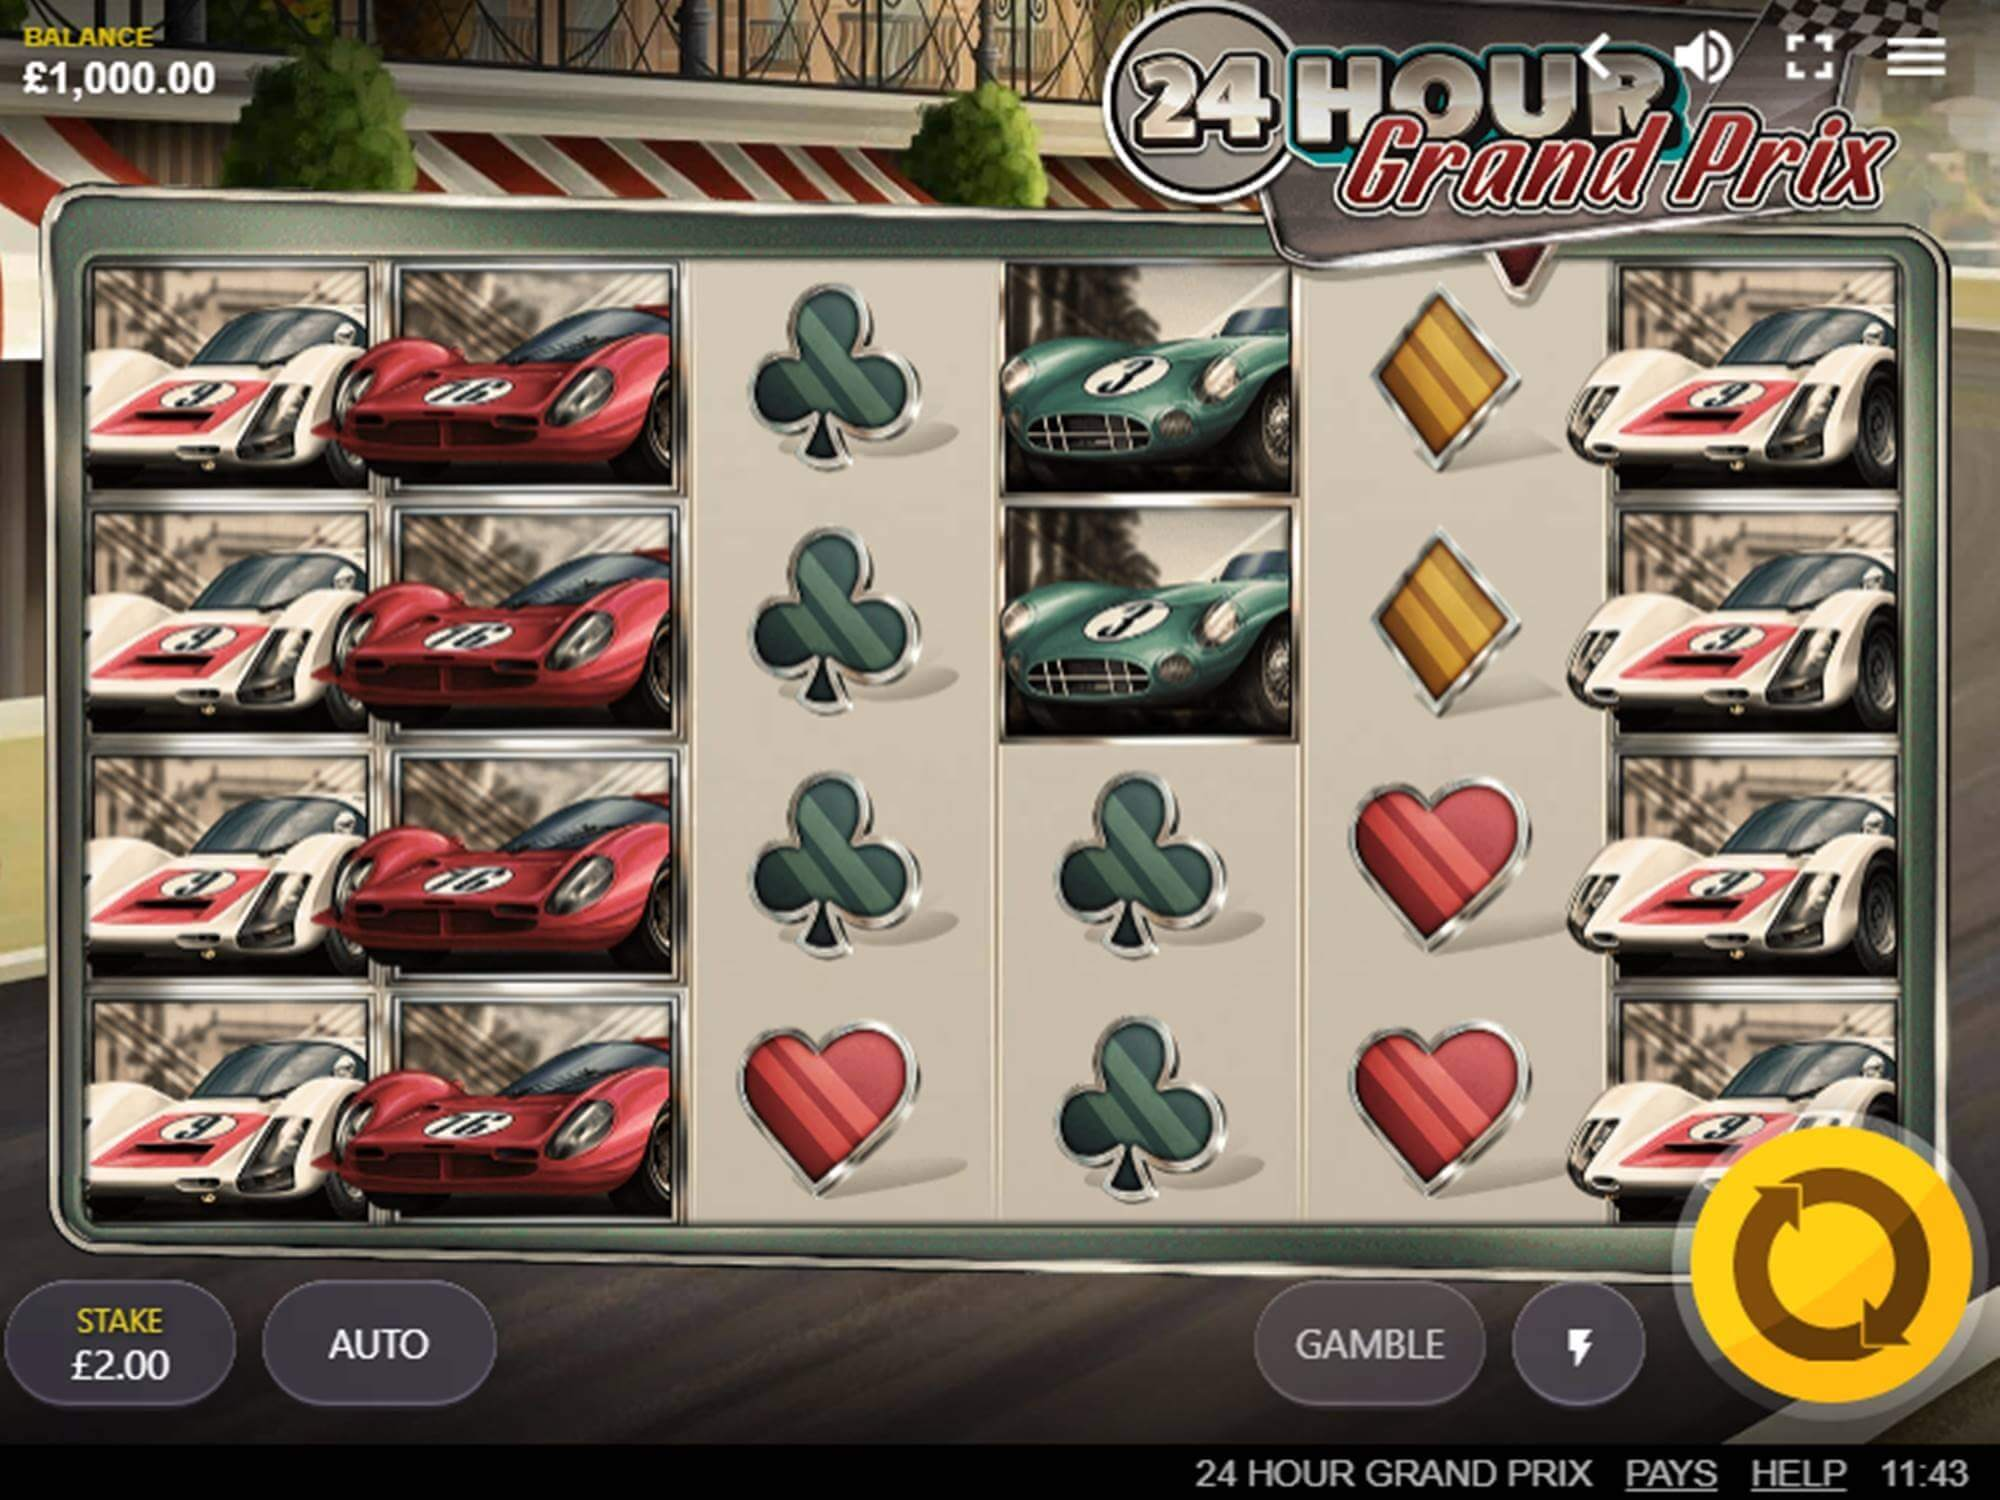 24 Hour Grand Prix Slot Gameplay